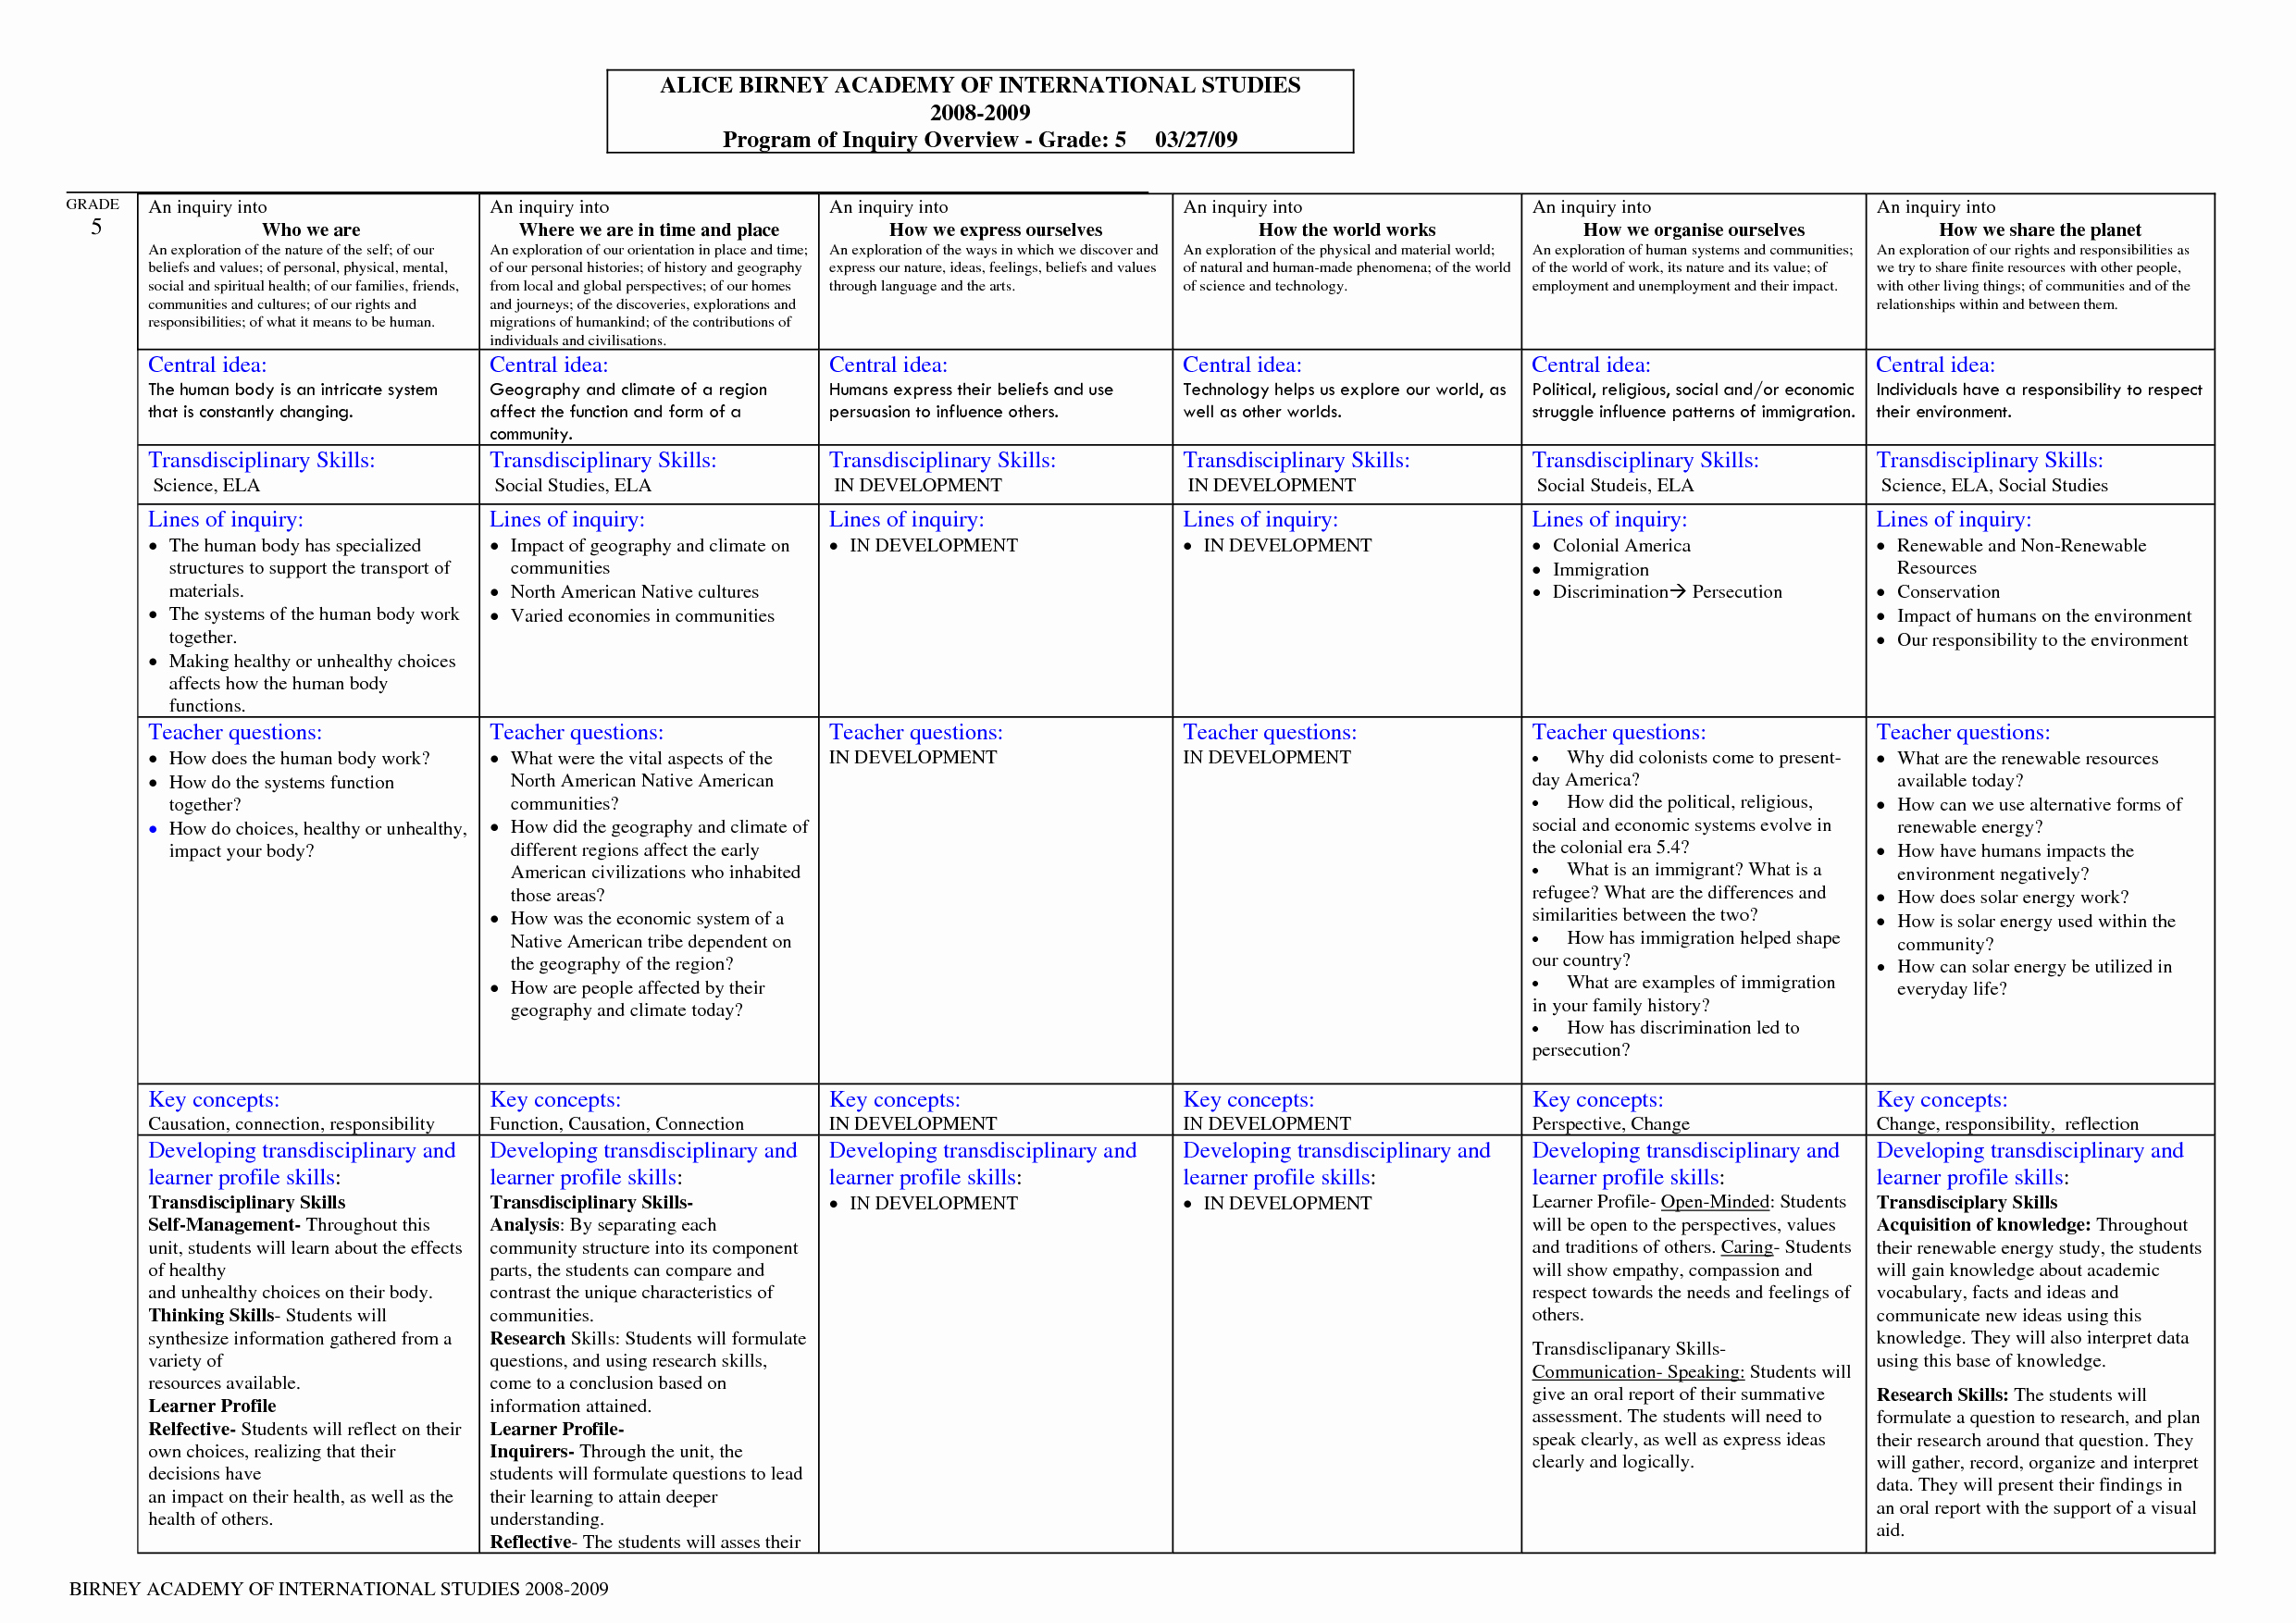 Ib Lesson Plan Template Unique Unit 5 Pyp Curriculum Connections How We Express